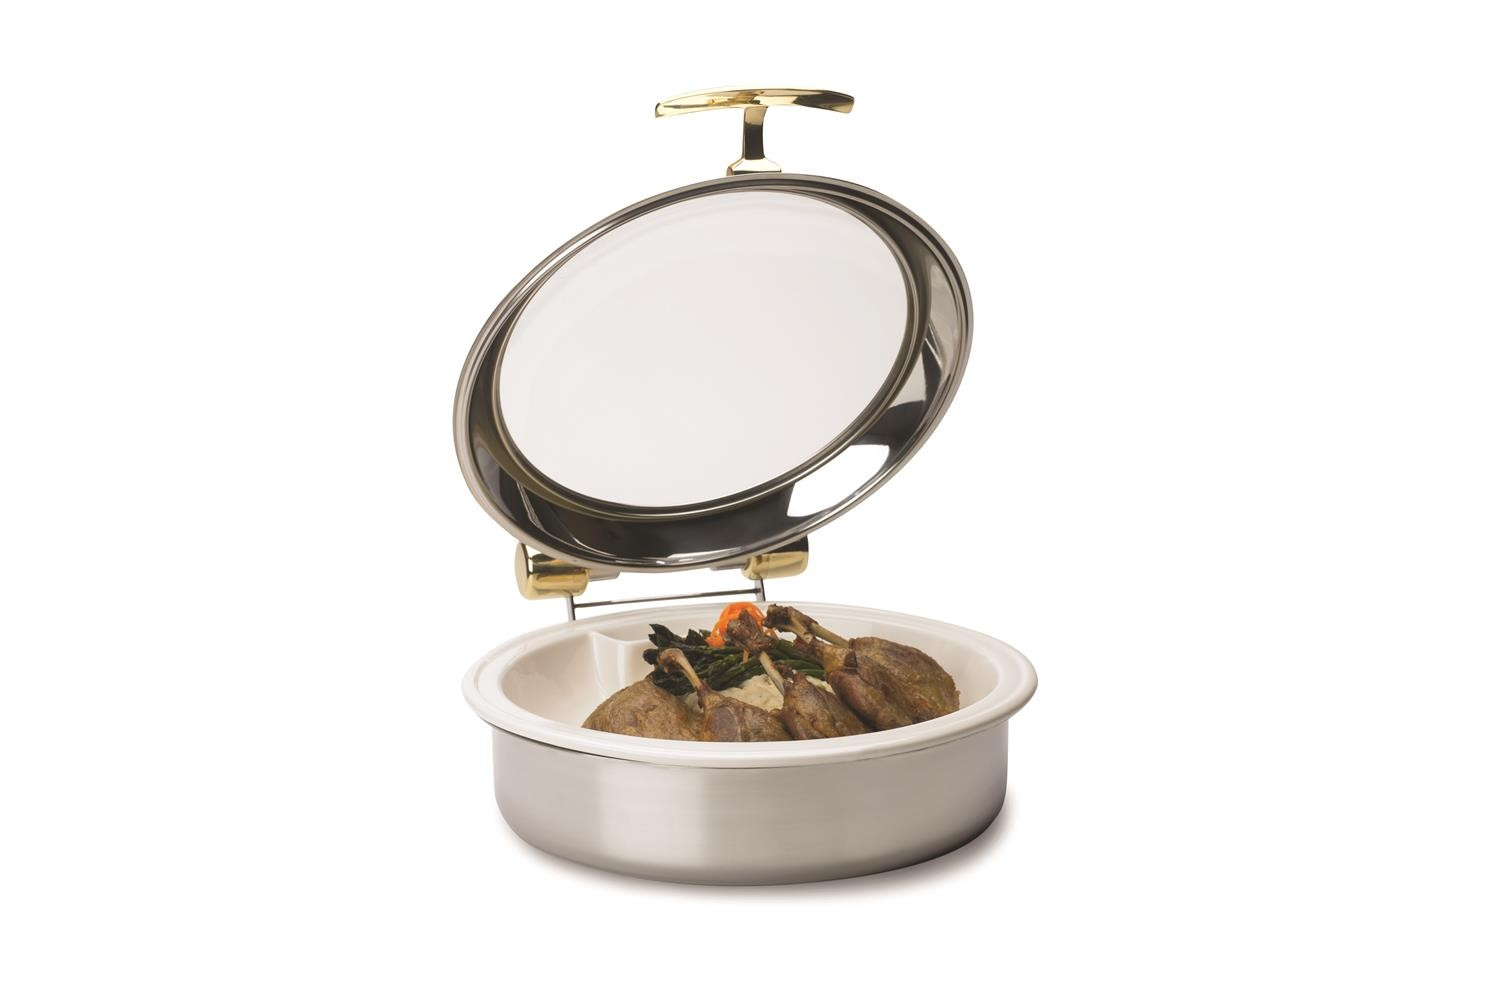 Vollrath 46122 Intrigue Glass Top Round Induction Chafer 6 Qt.